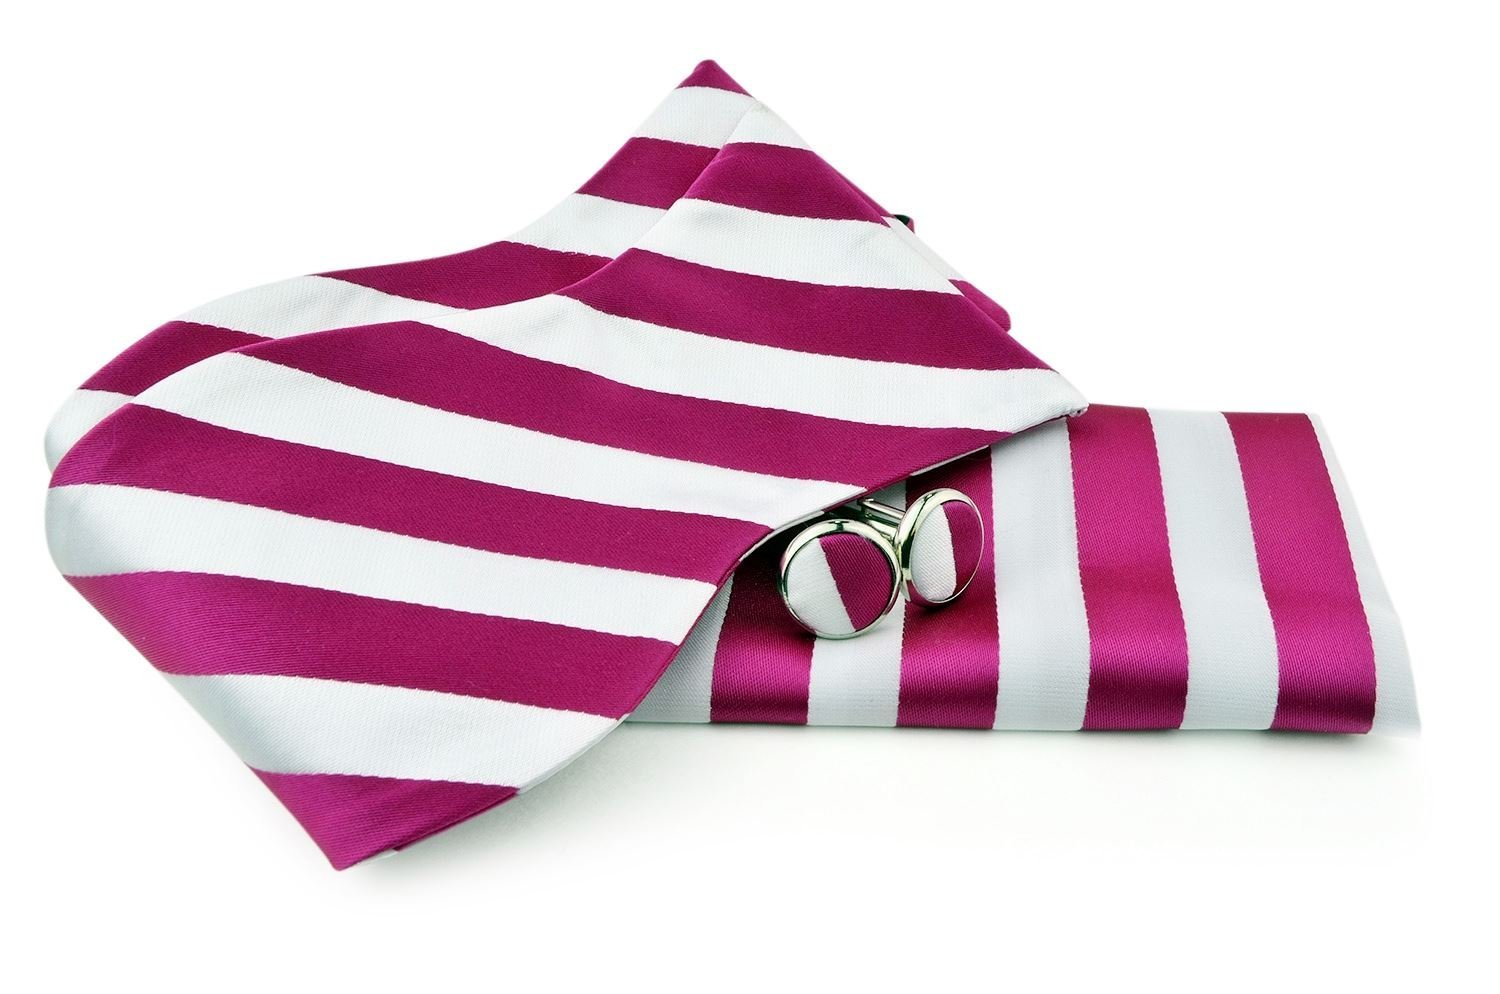 Uomo Vennetto Men's College Striped Polyester Self Tie -Bow Tie and Cufflink Set - DarkPink